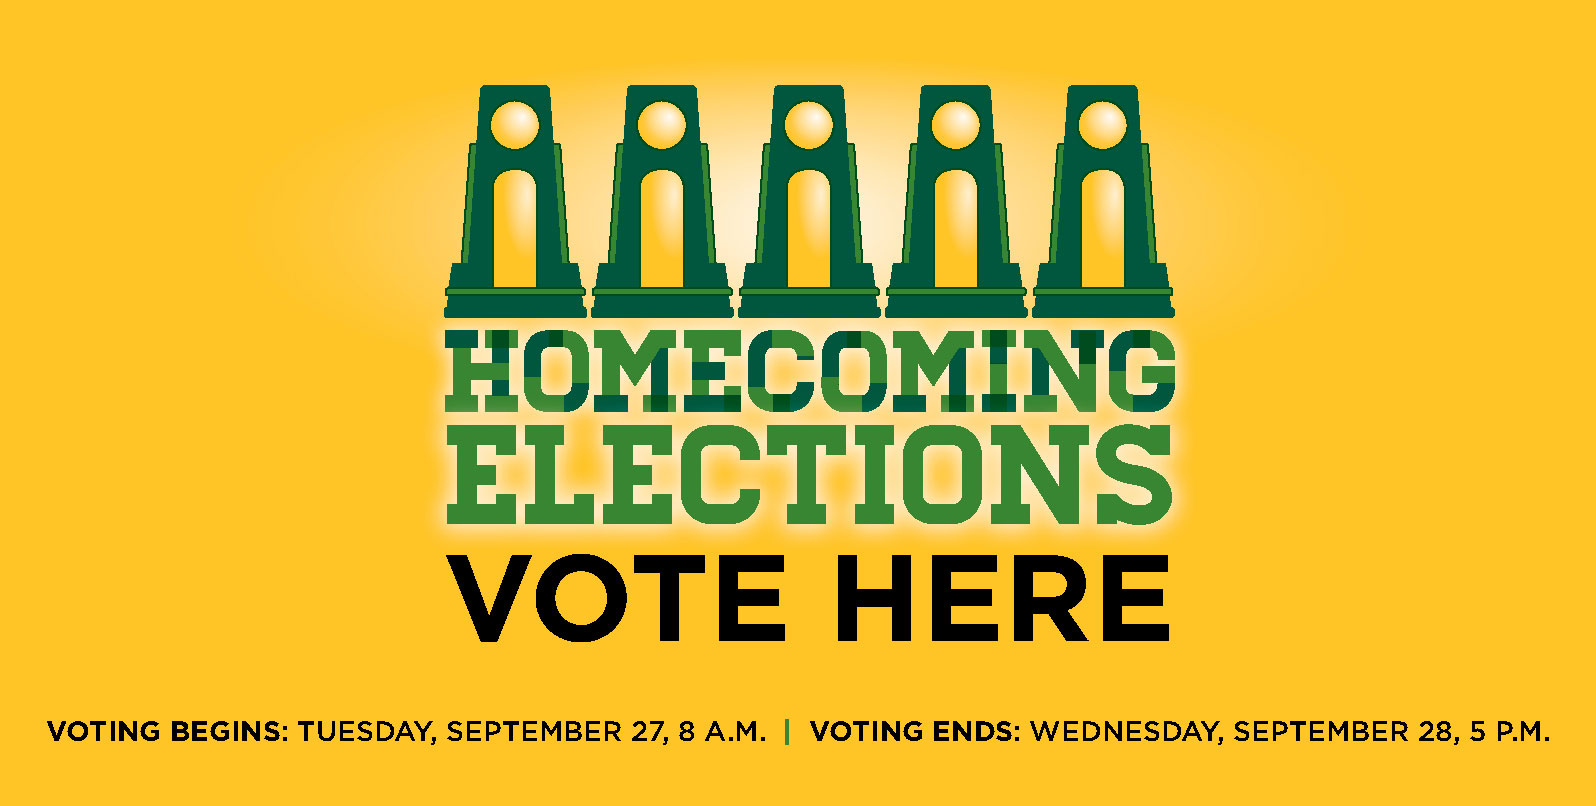 Homecoming Elections 2016, vote here September 27 - 28